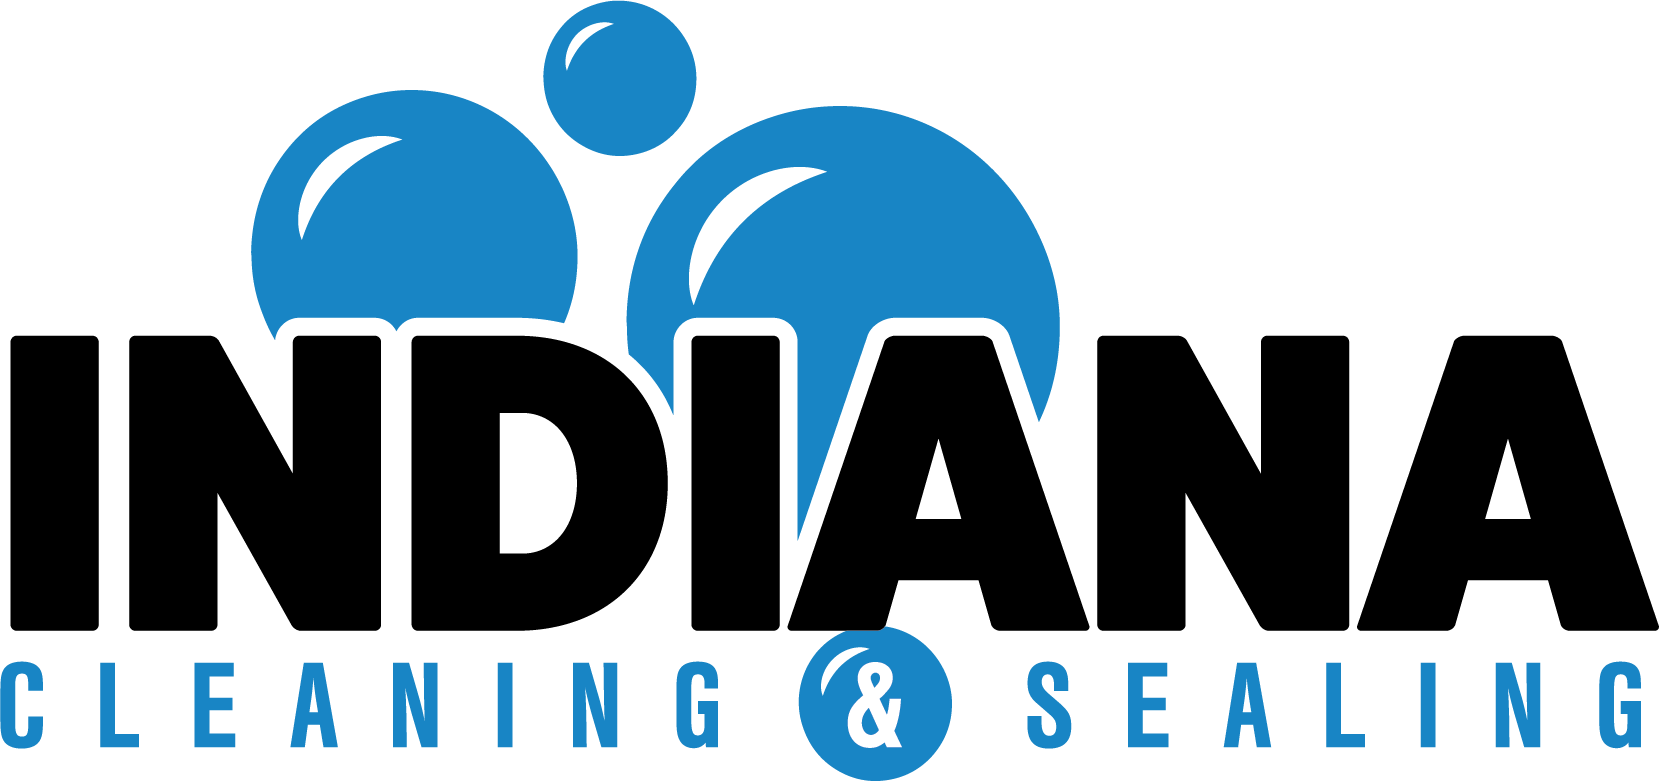 Indiana Cleaning & Sealing Logo